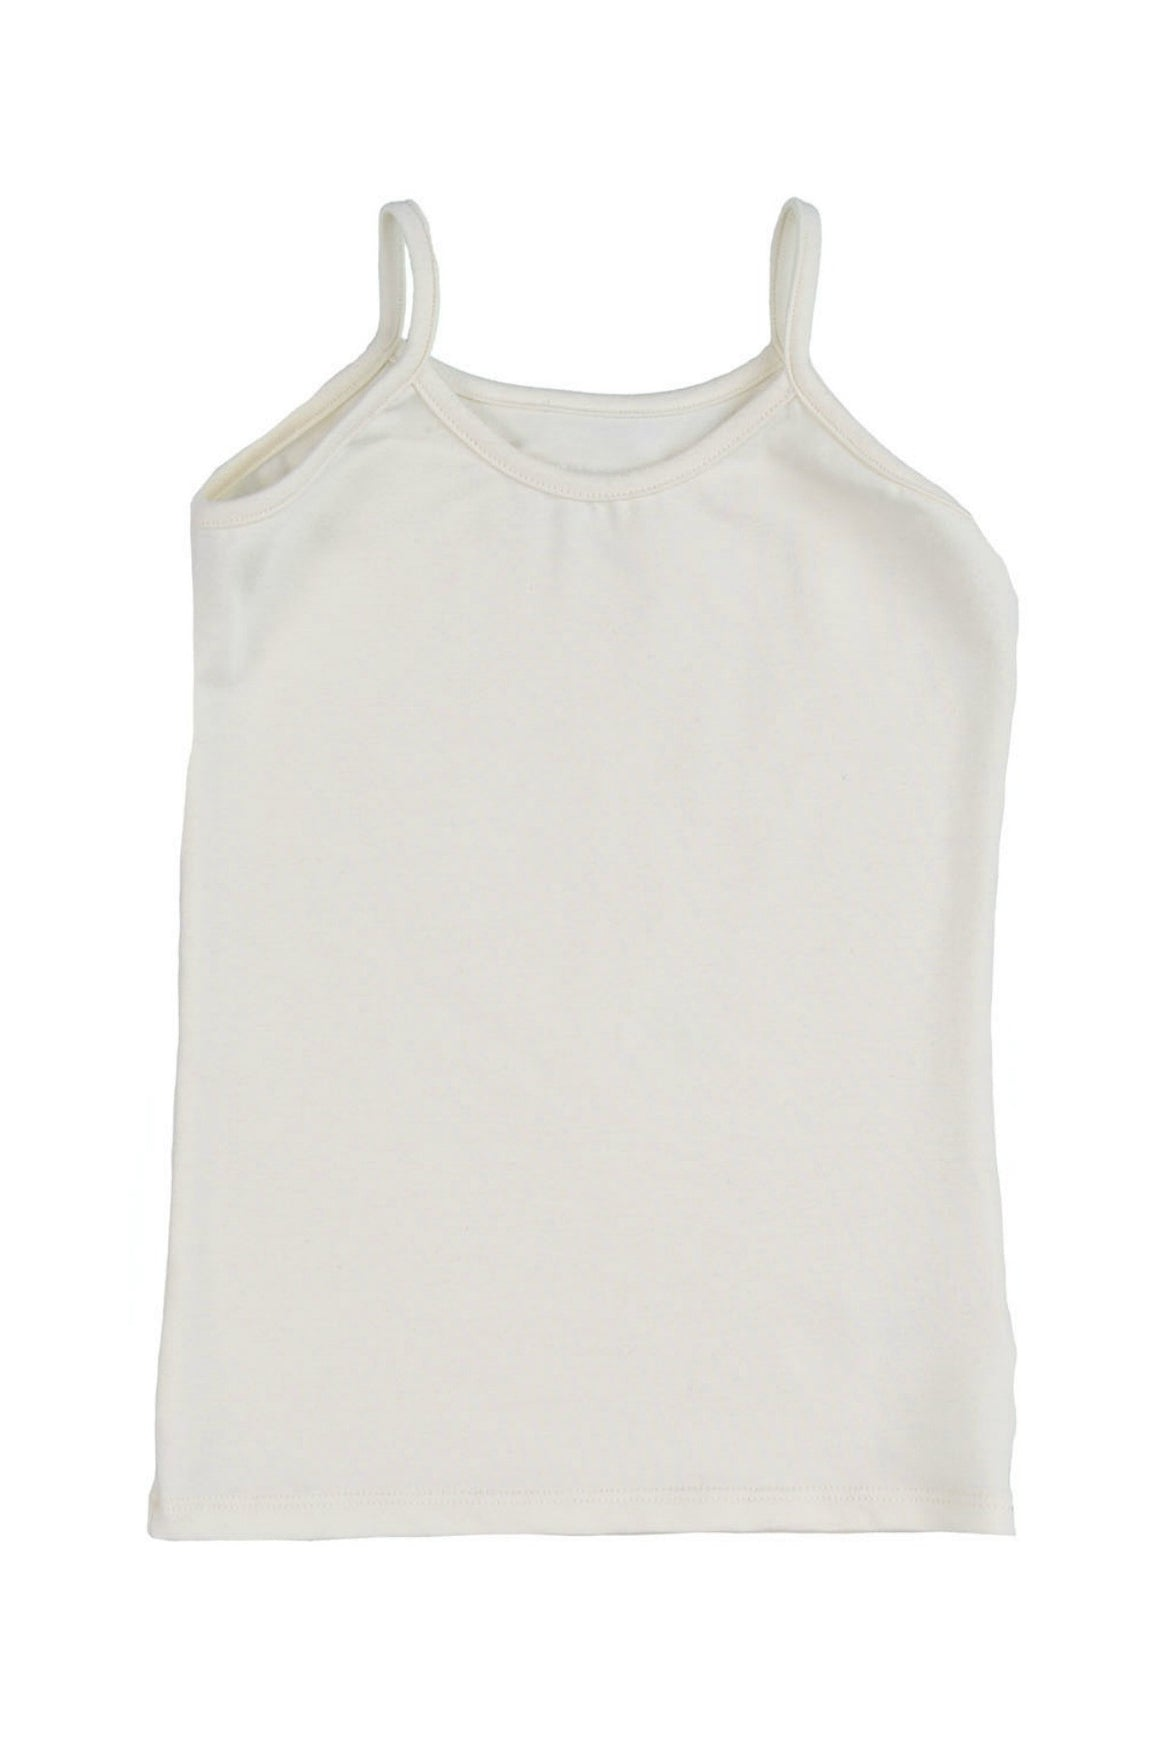 Basic Cami - Cream -Sample size 3